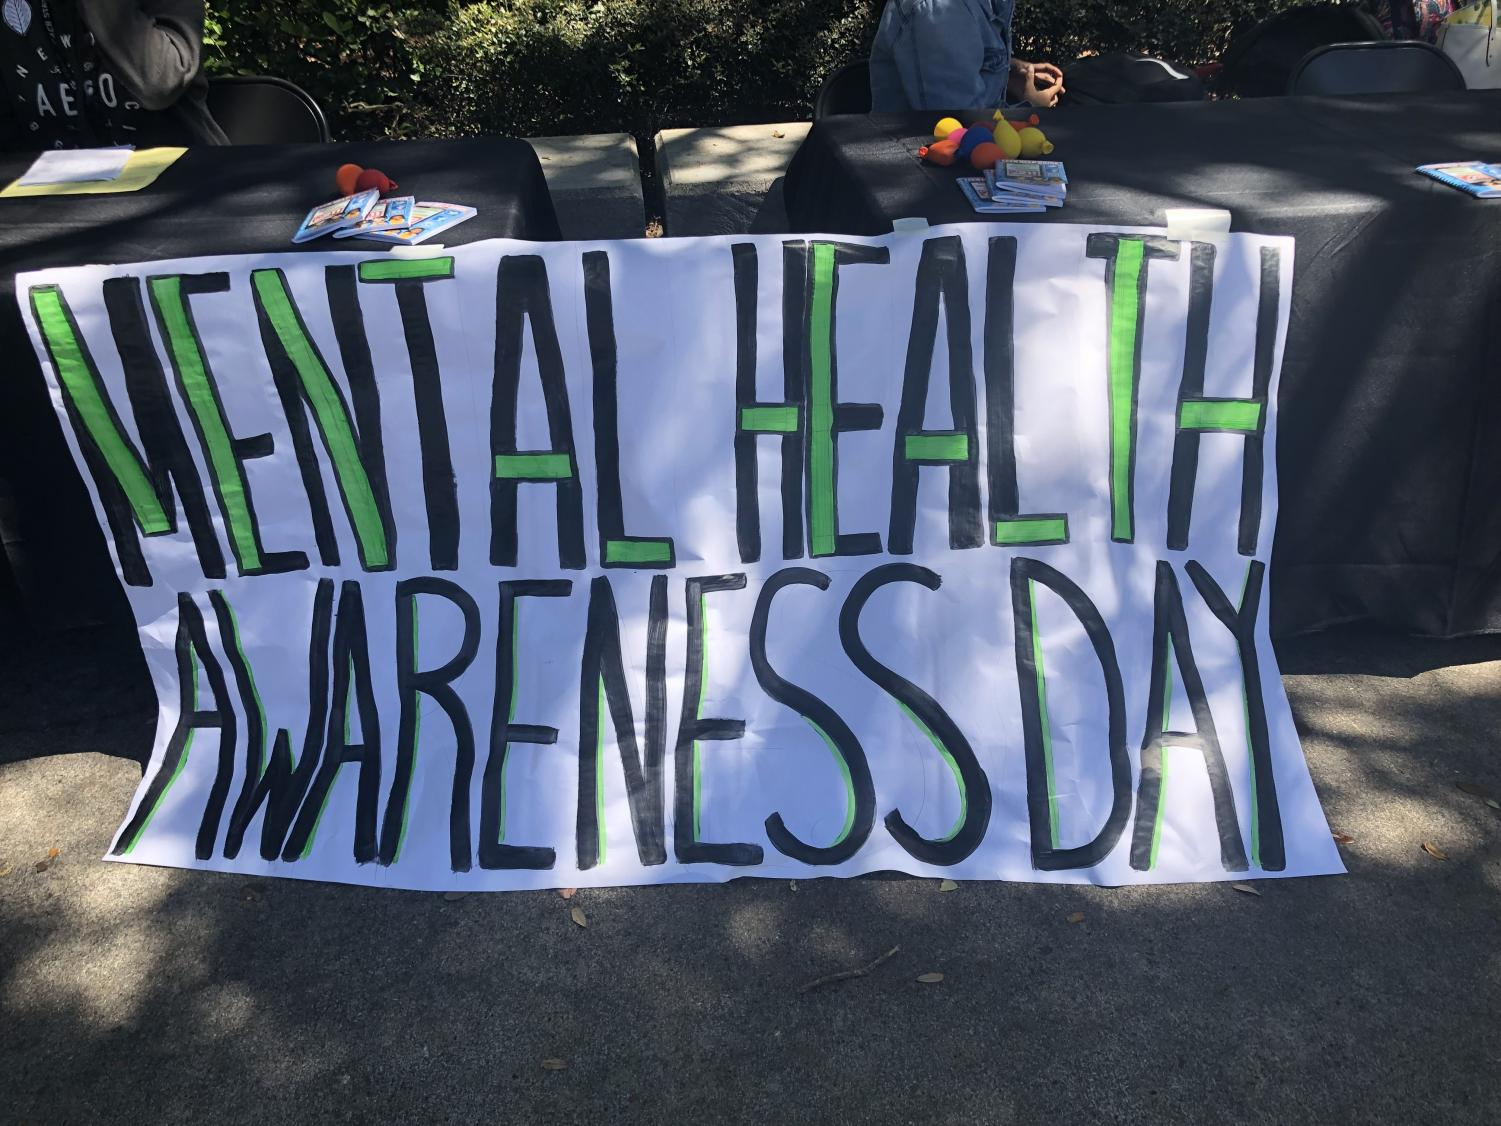 Mental Health Awareness Day, hosted on May 22.